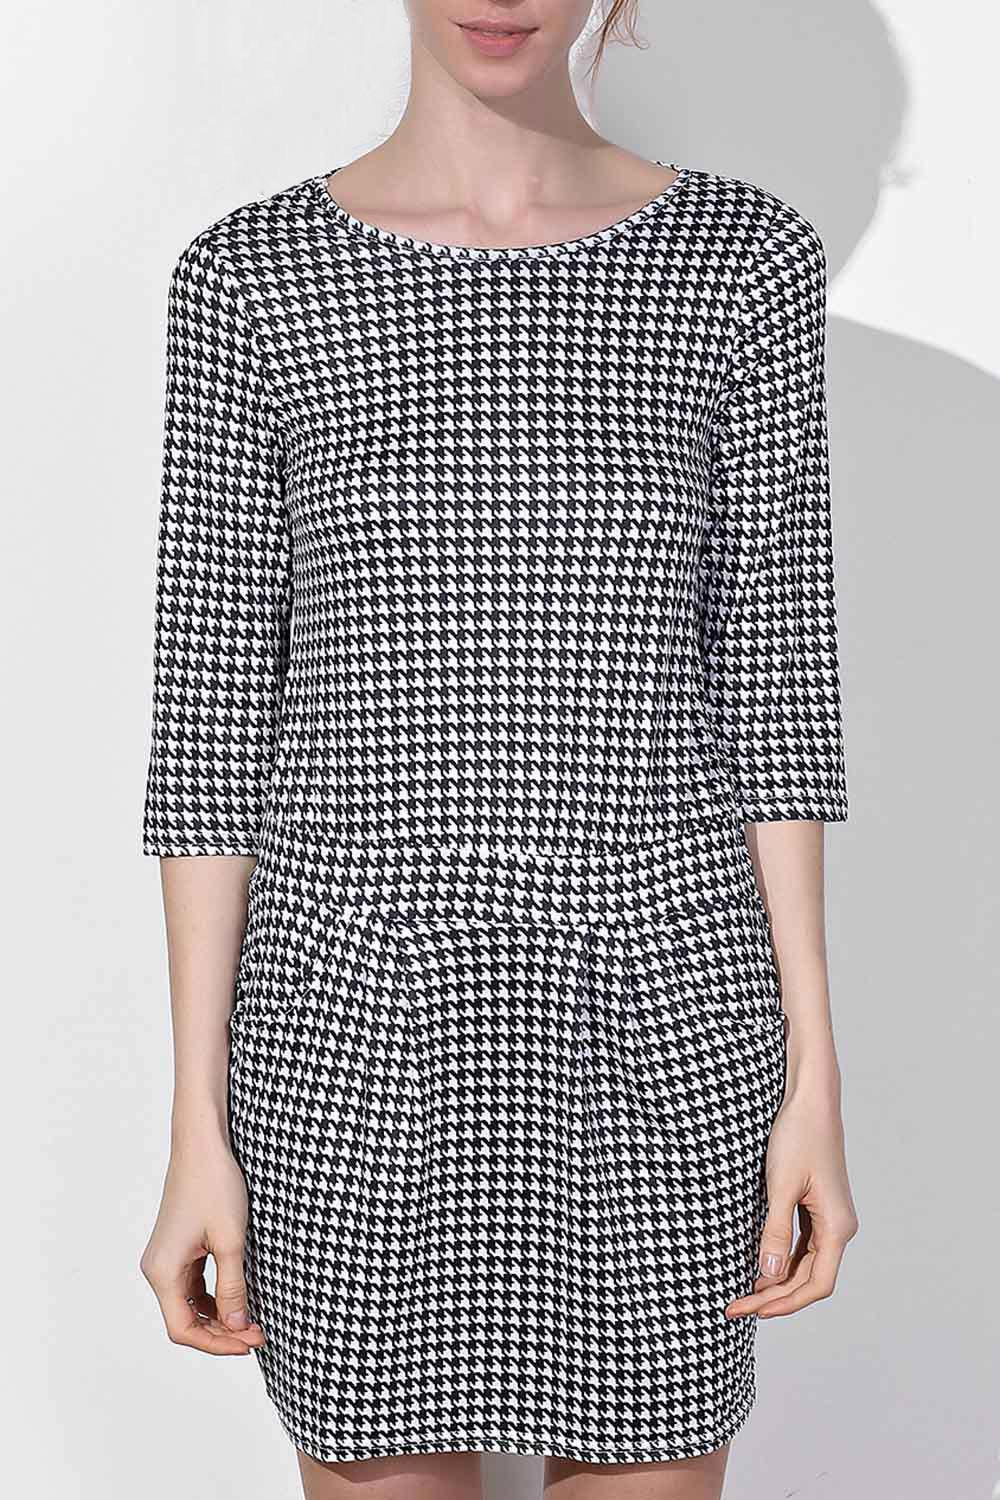 Trendy Chic Round Collar Houndstooth Printed 3/4 Sleeve Dress For Women